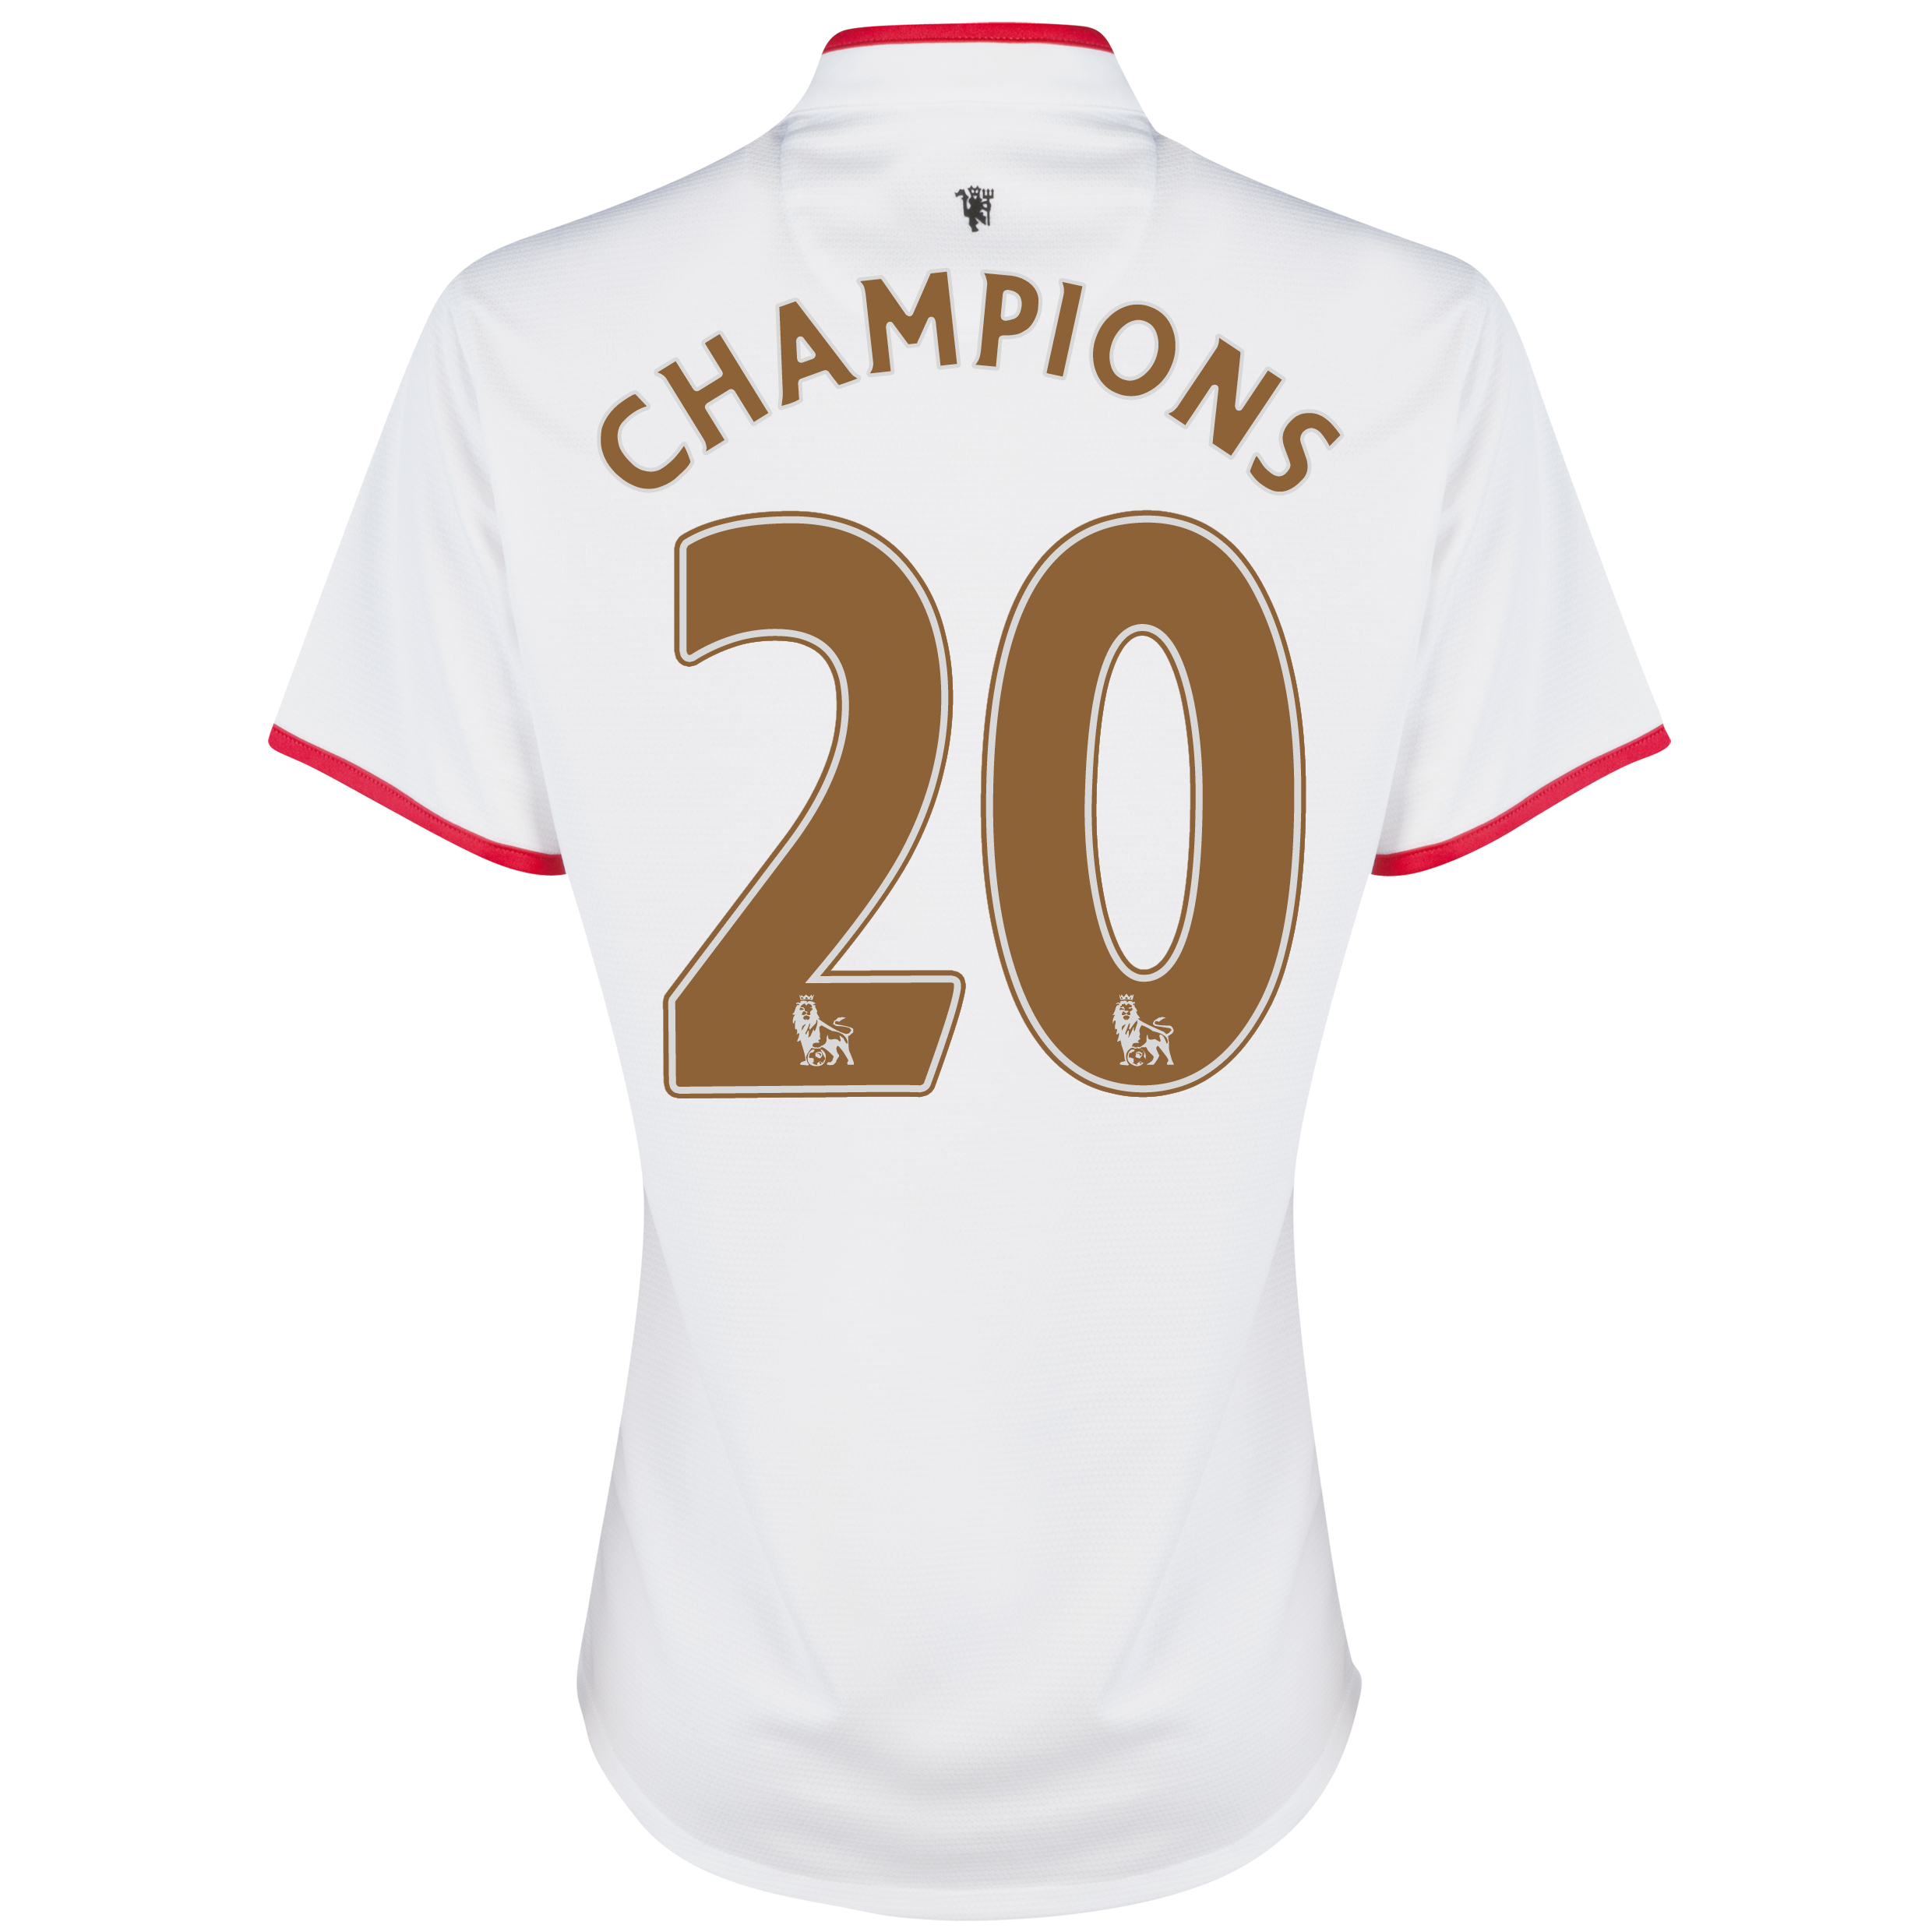 Manchester United Away Shirt 2012/13 - Womens with Champions 20 printing